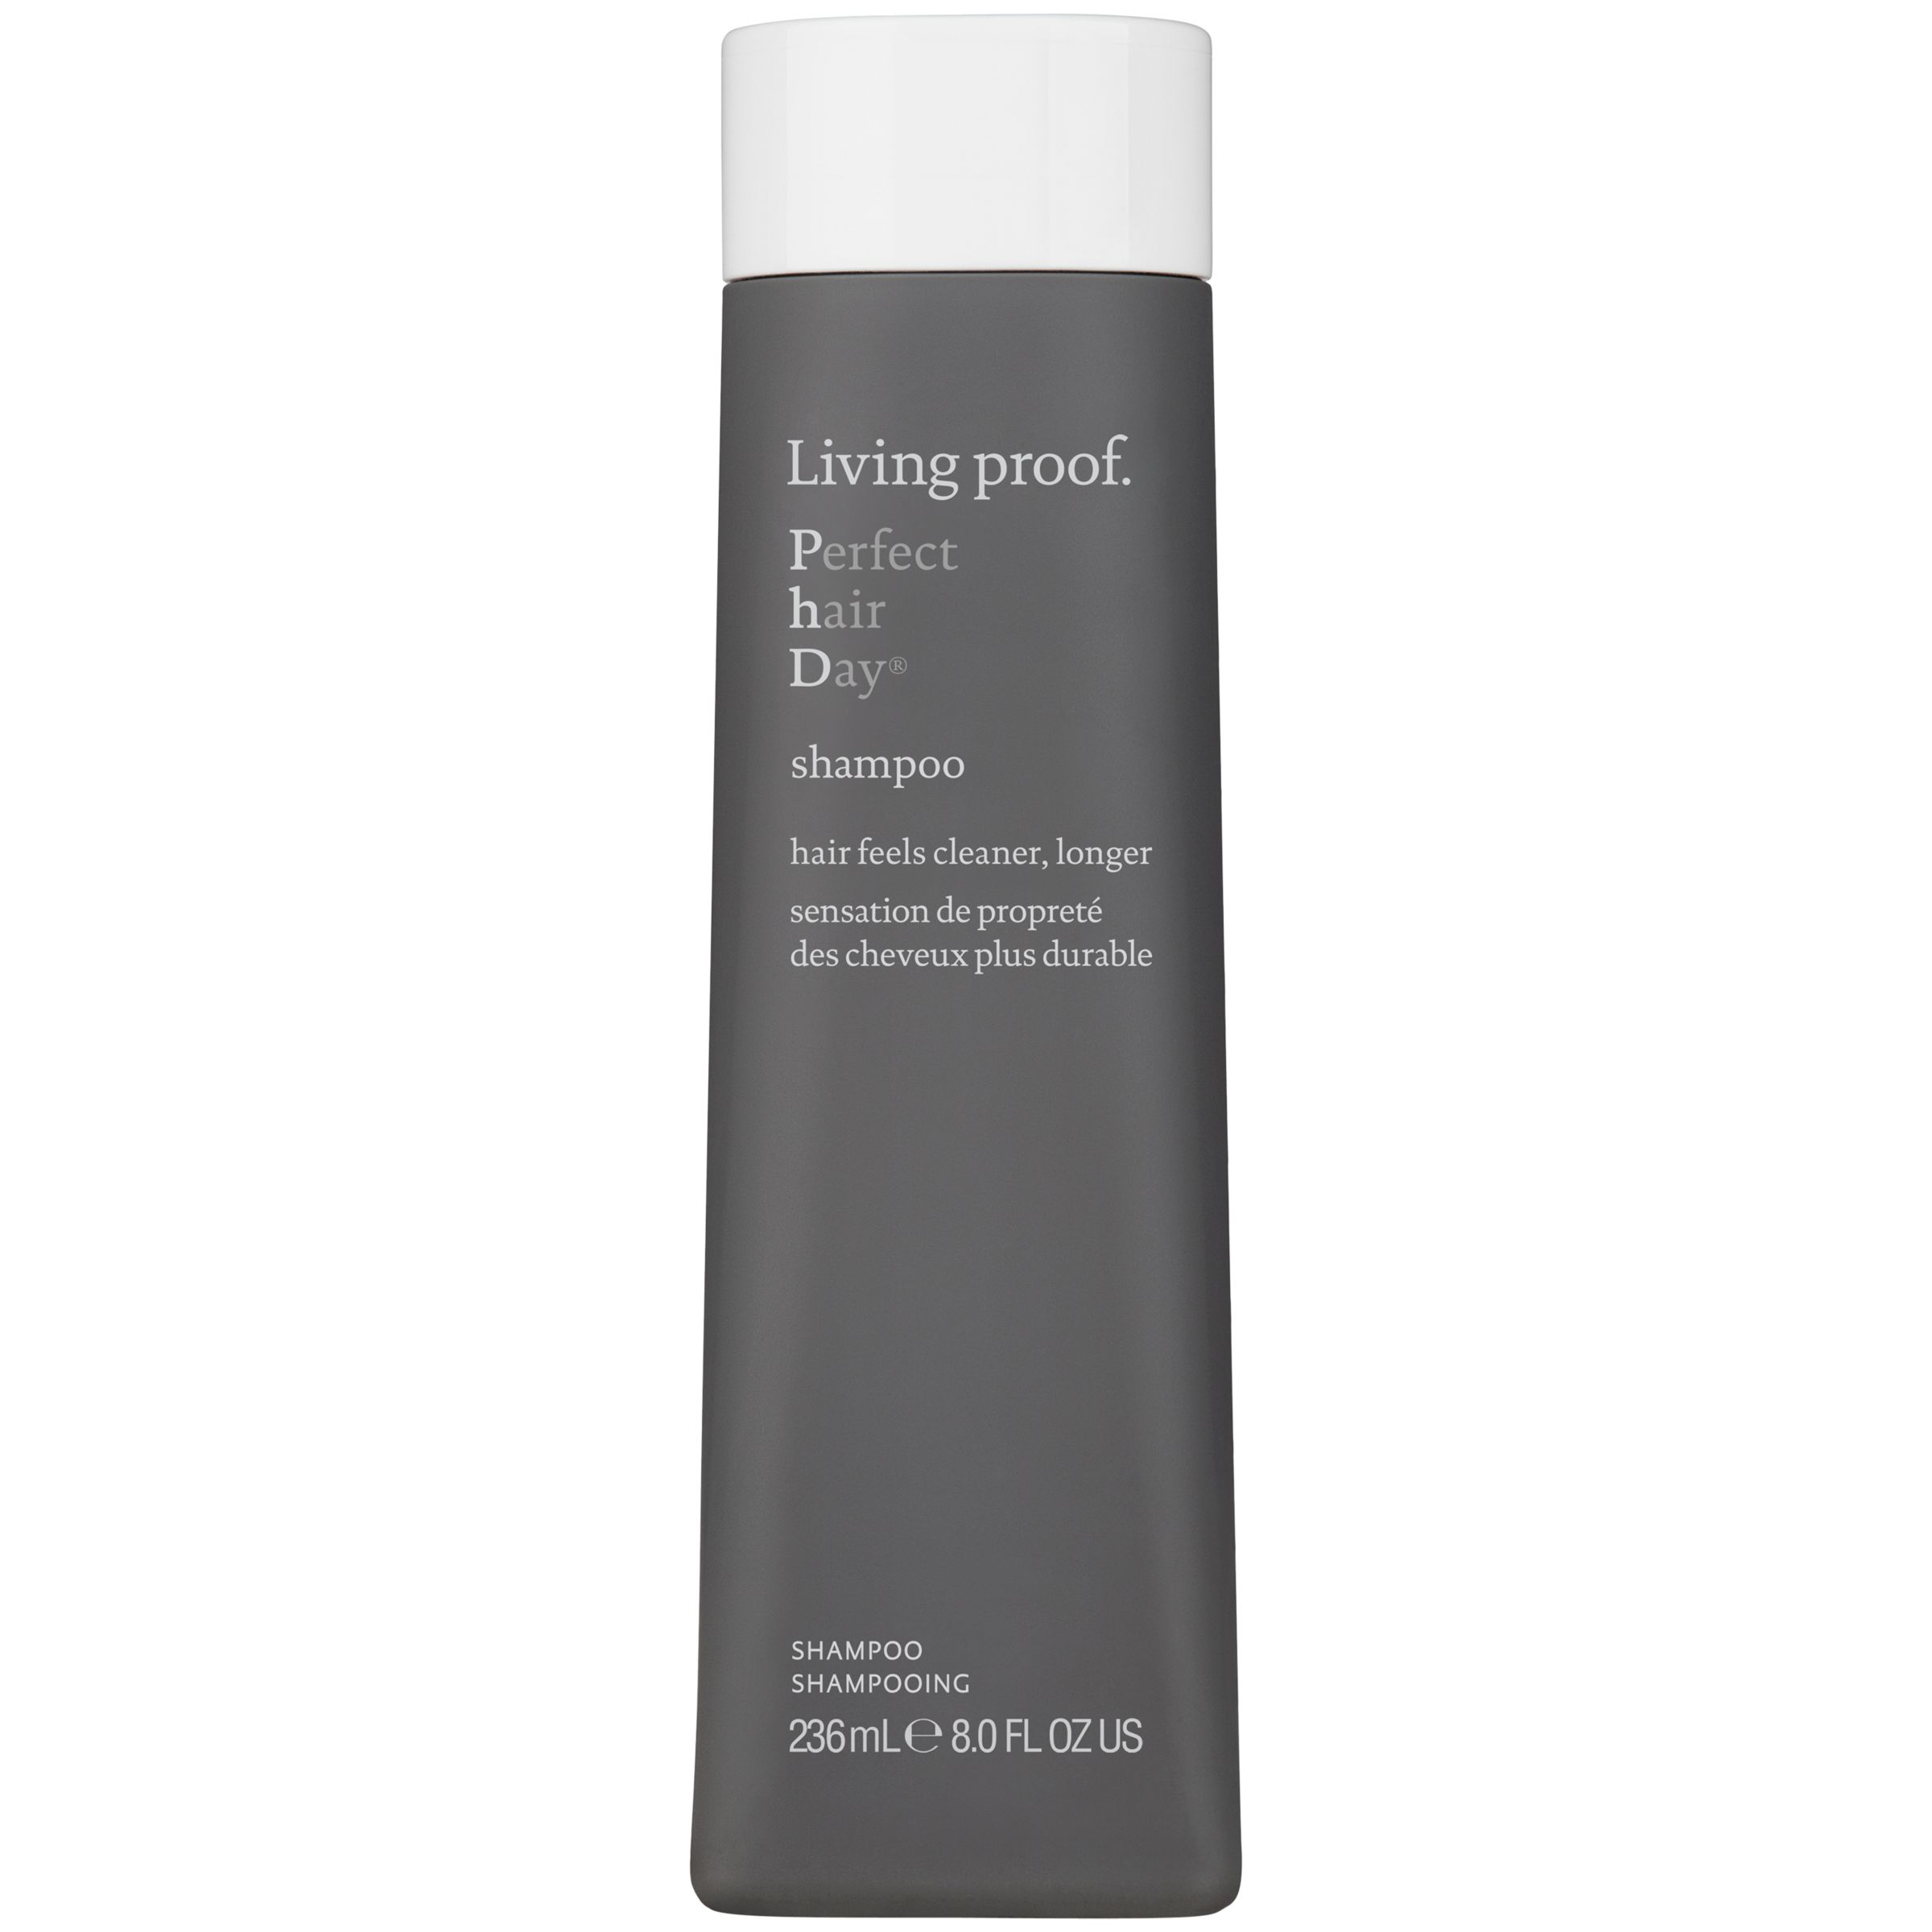 Living Proof Living Proof Perfect Hair Day Shampoo